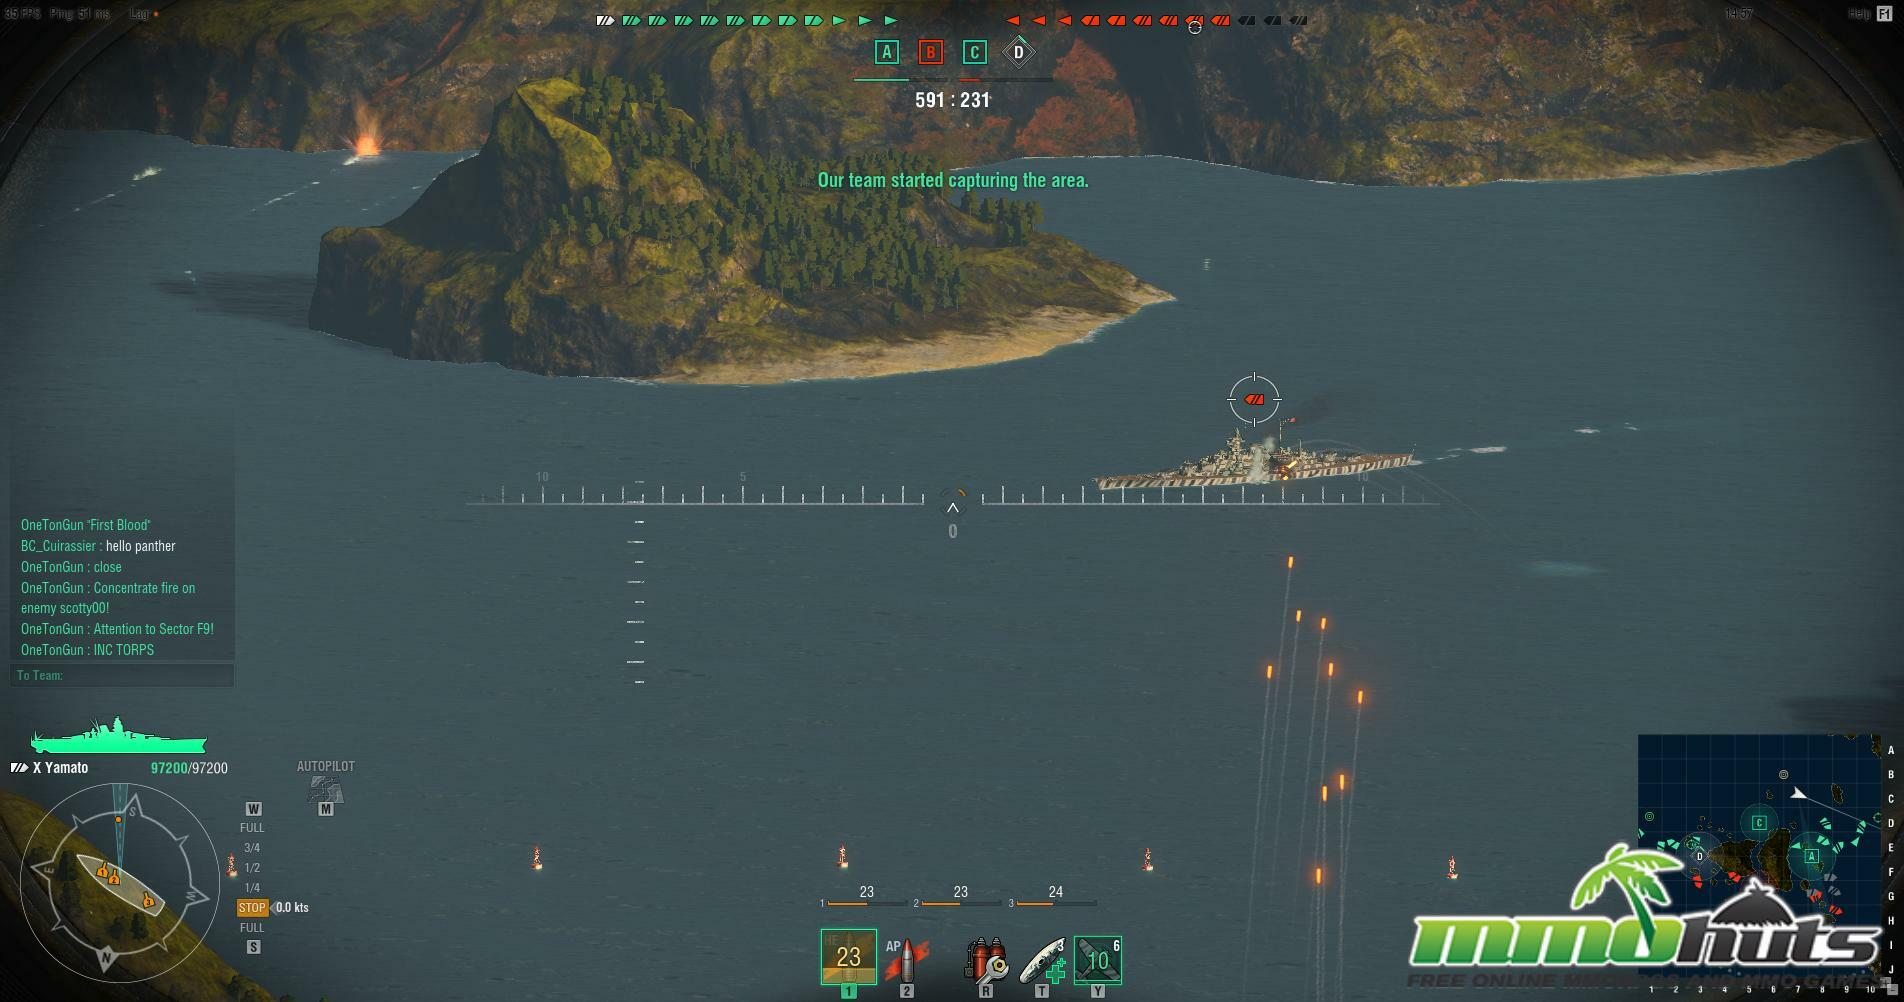 worldofwarships 2015-10-01 16-33-39-26